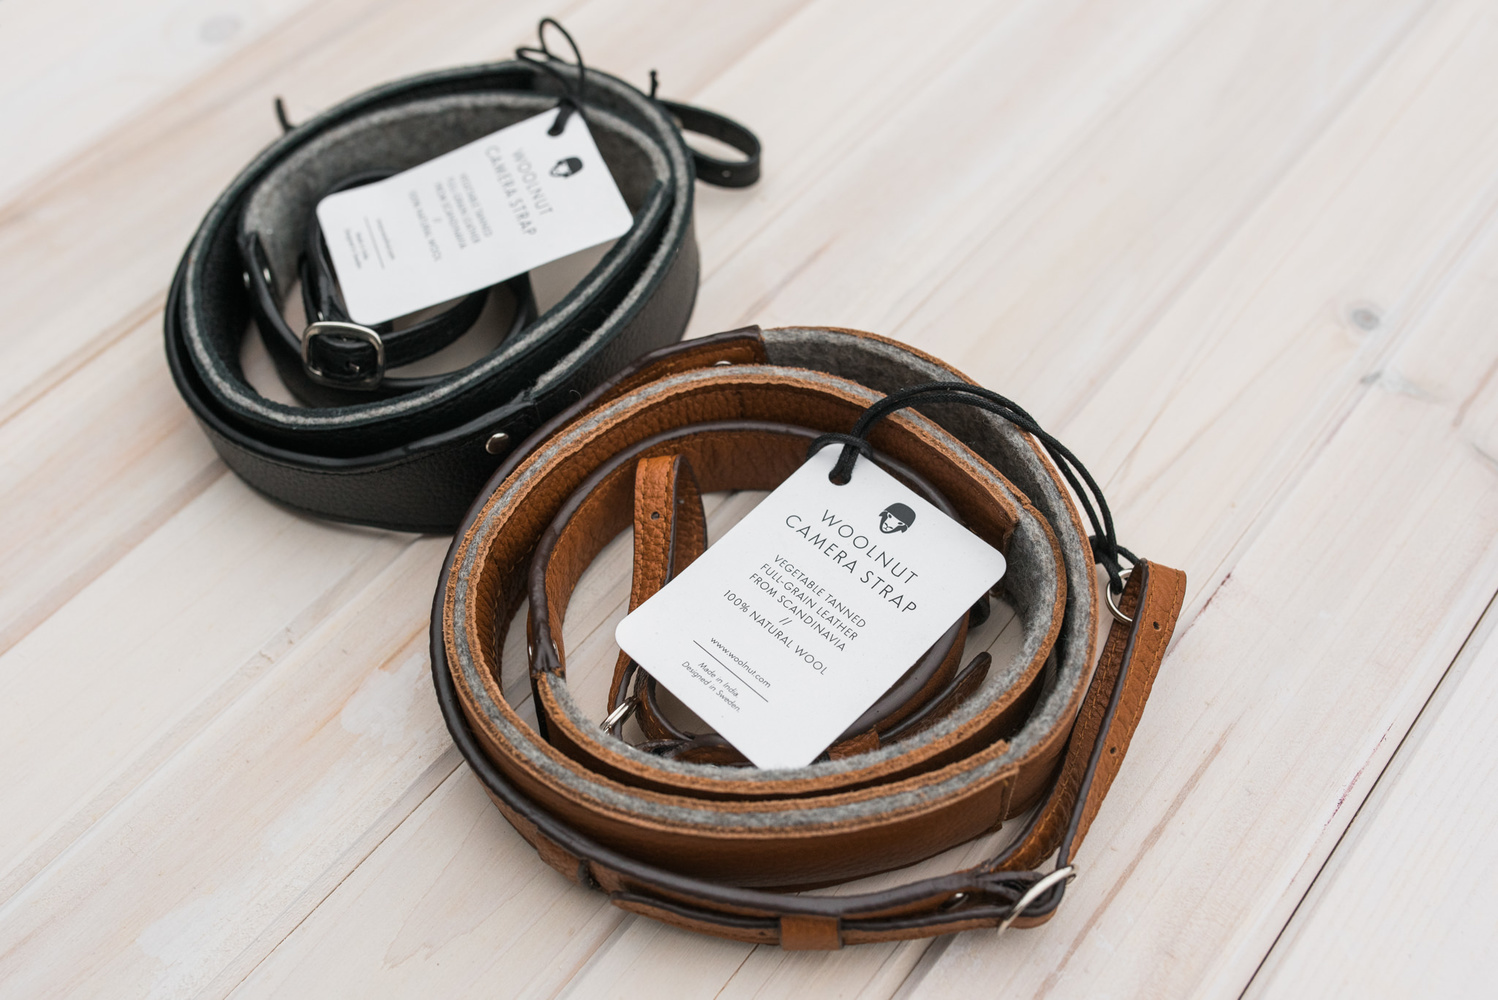 Black and brown leather camera strap